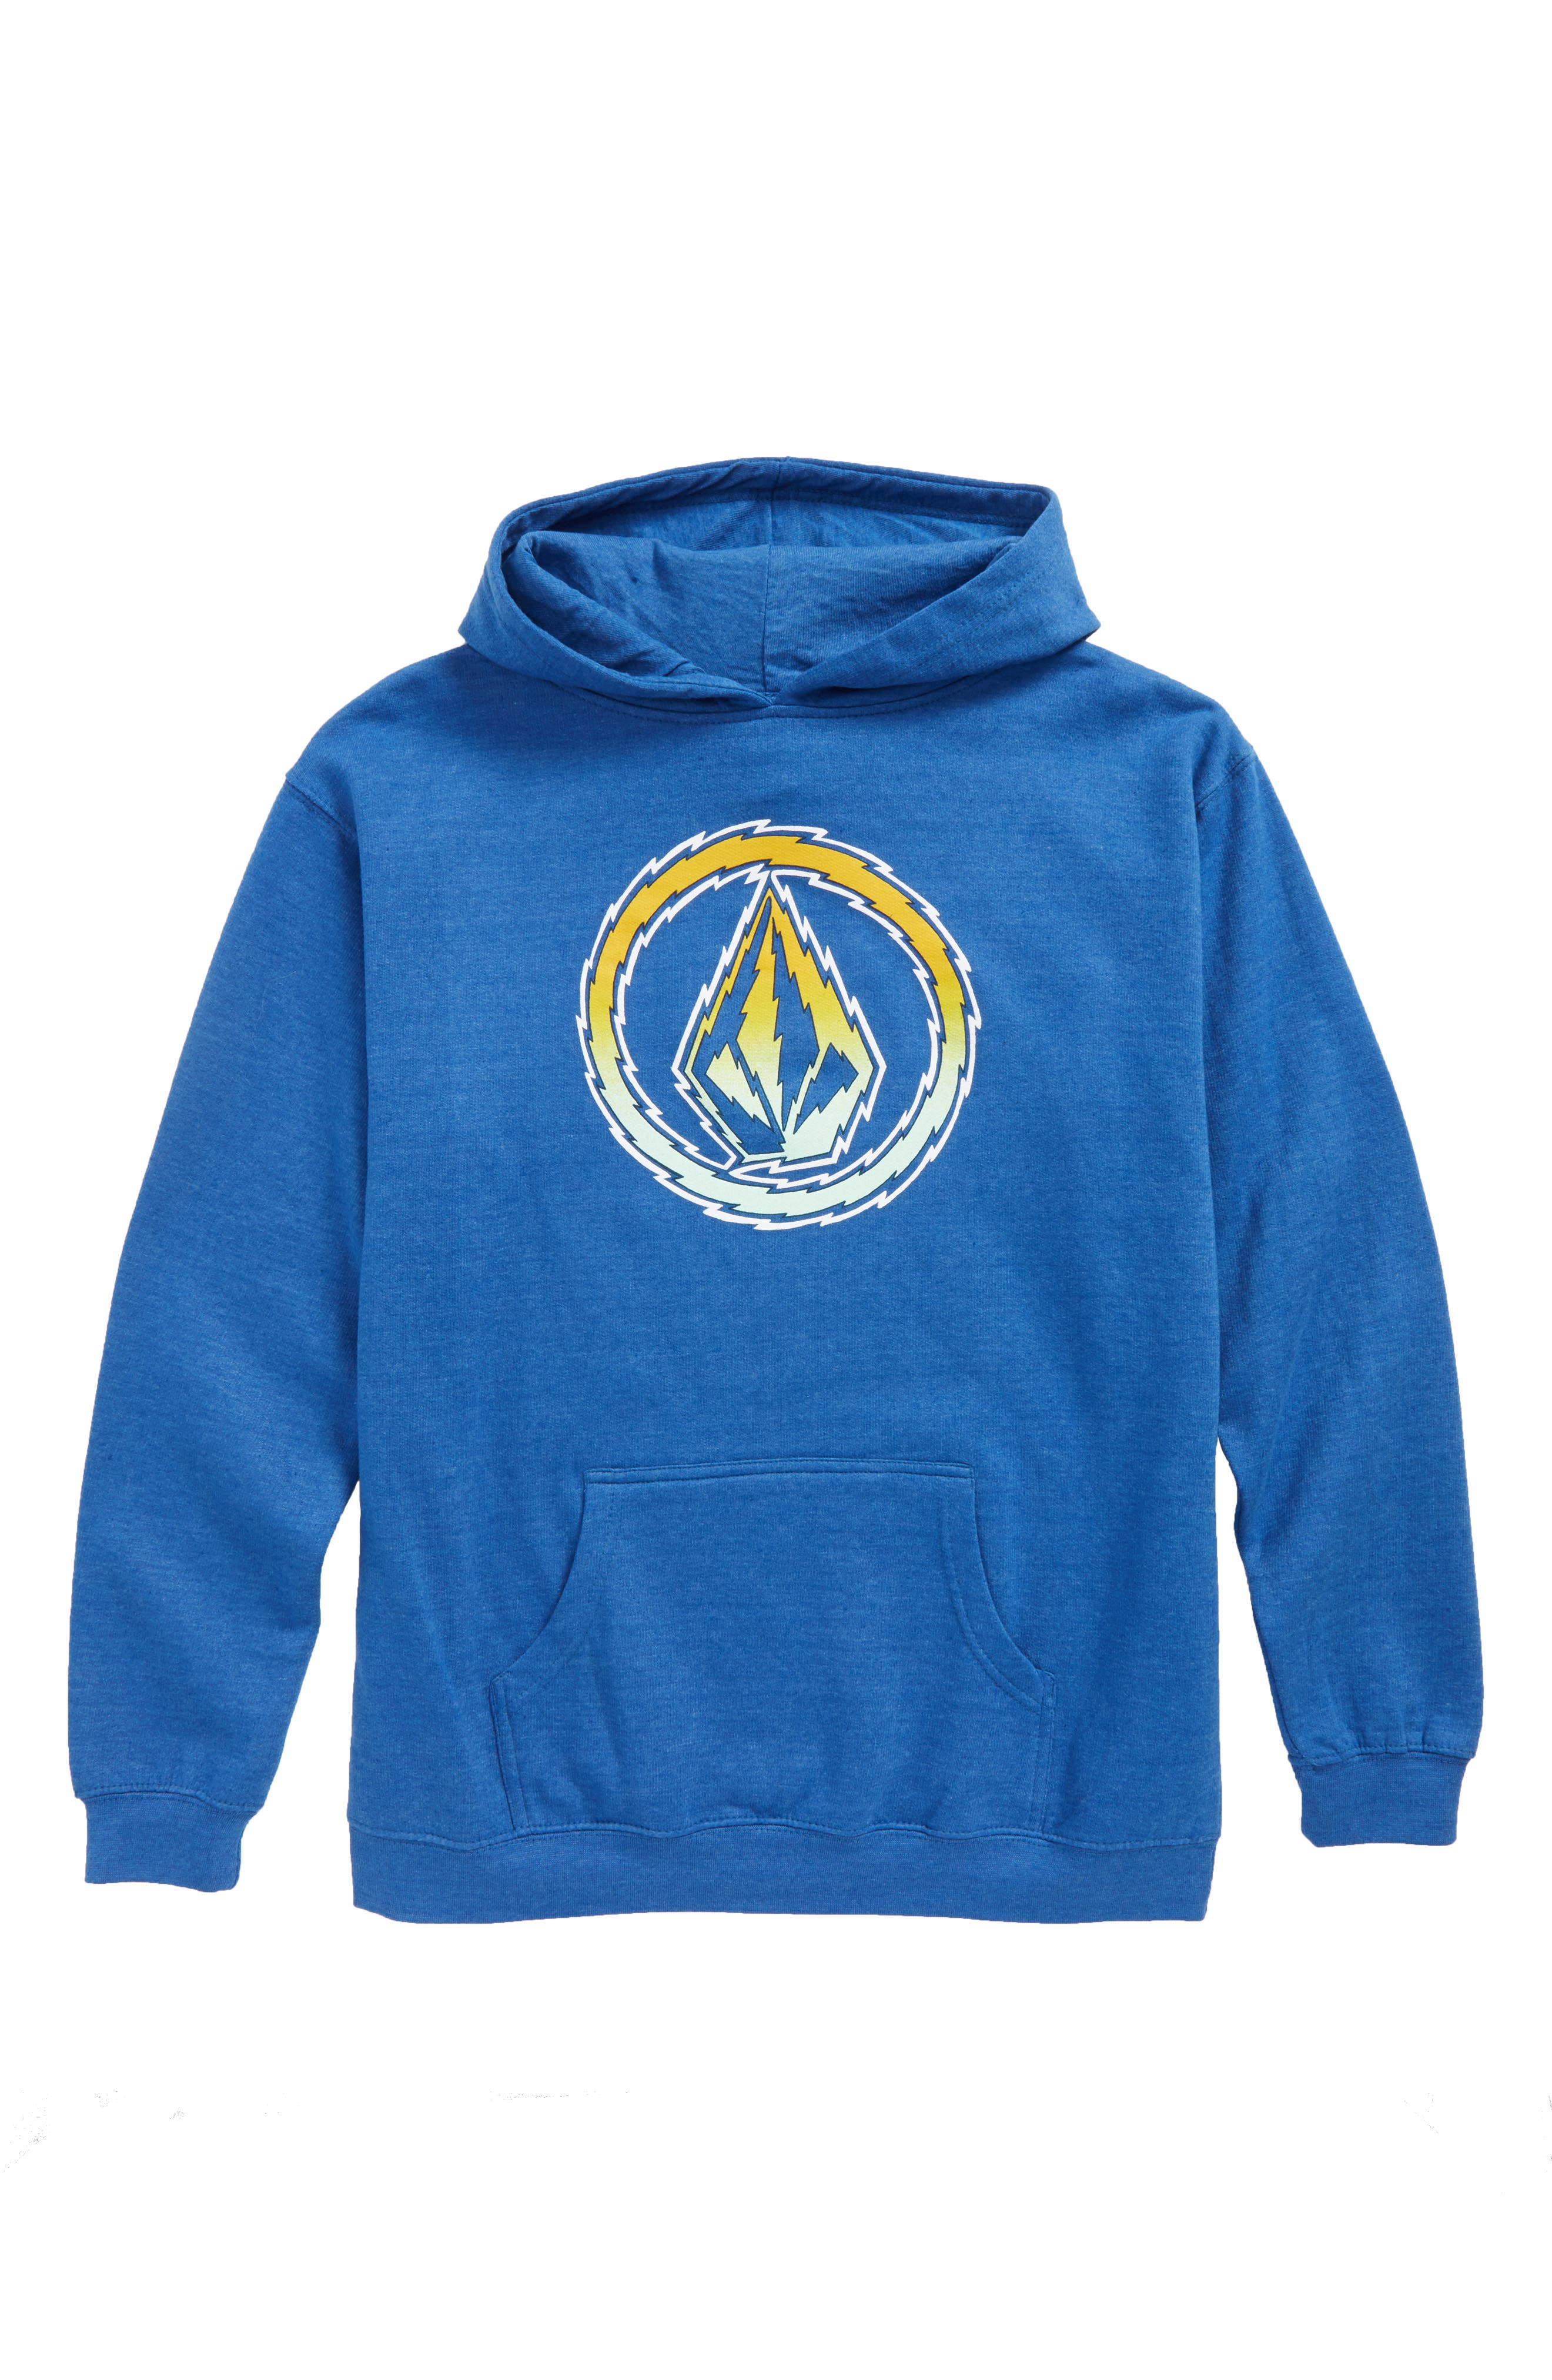 Logo Graphic Hoodie,                         Main,                         color, 407